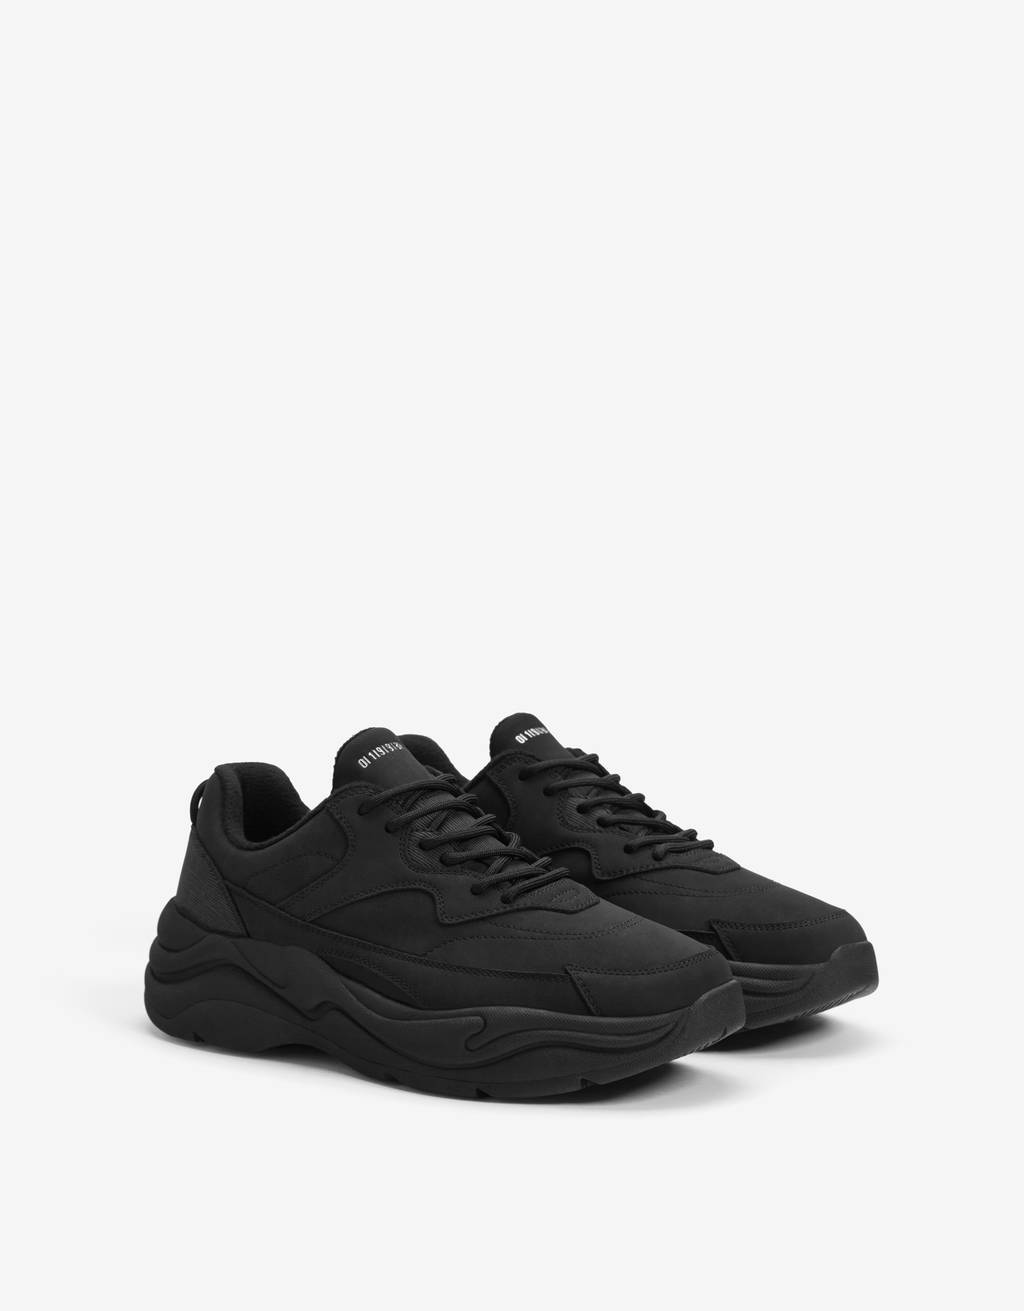 Men's trainers with warm lining